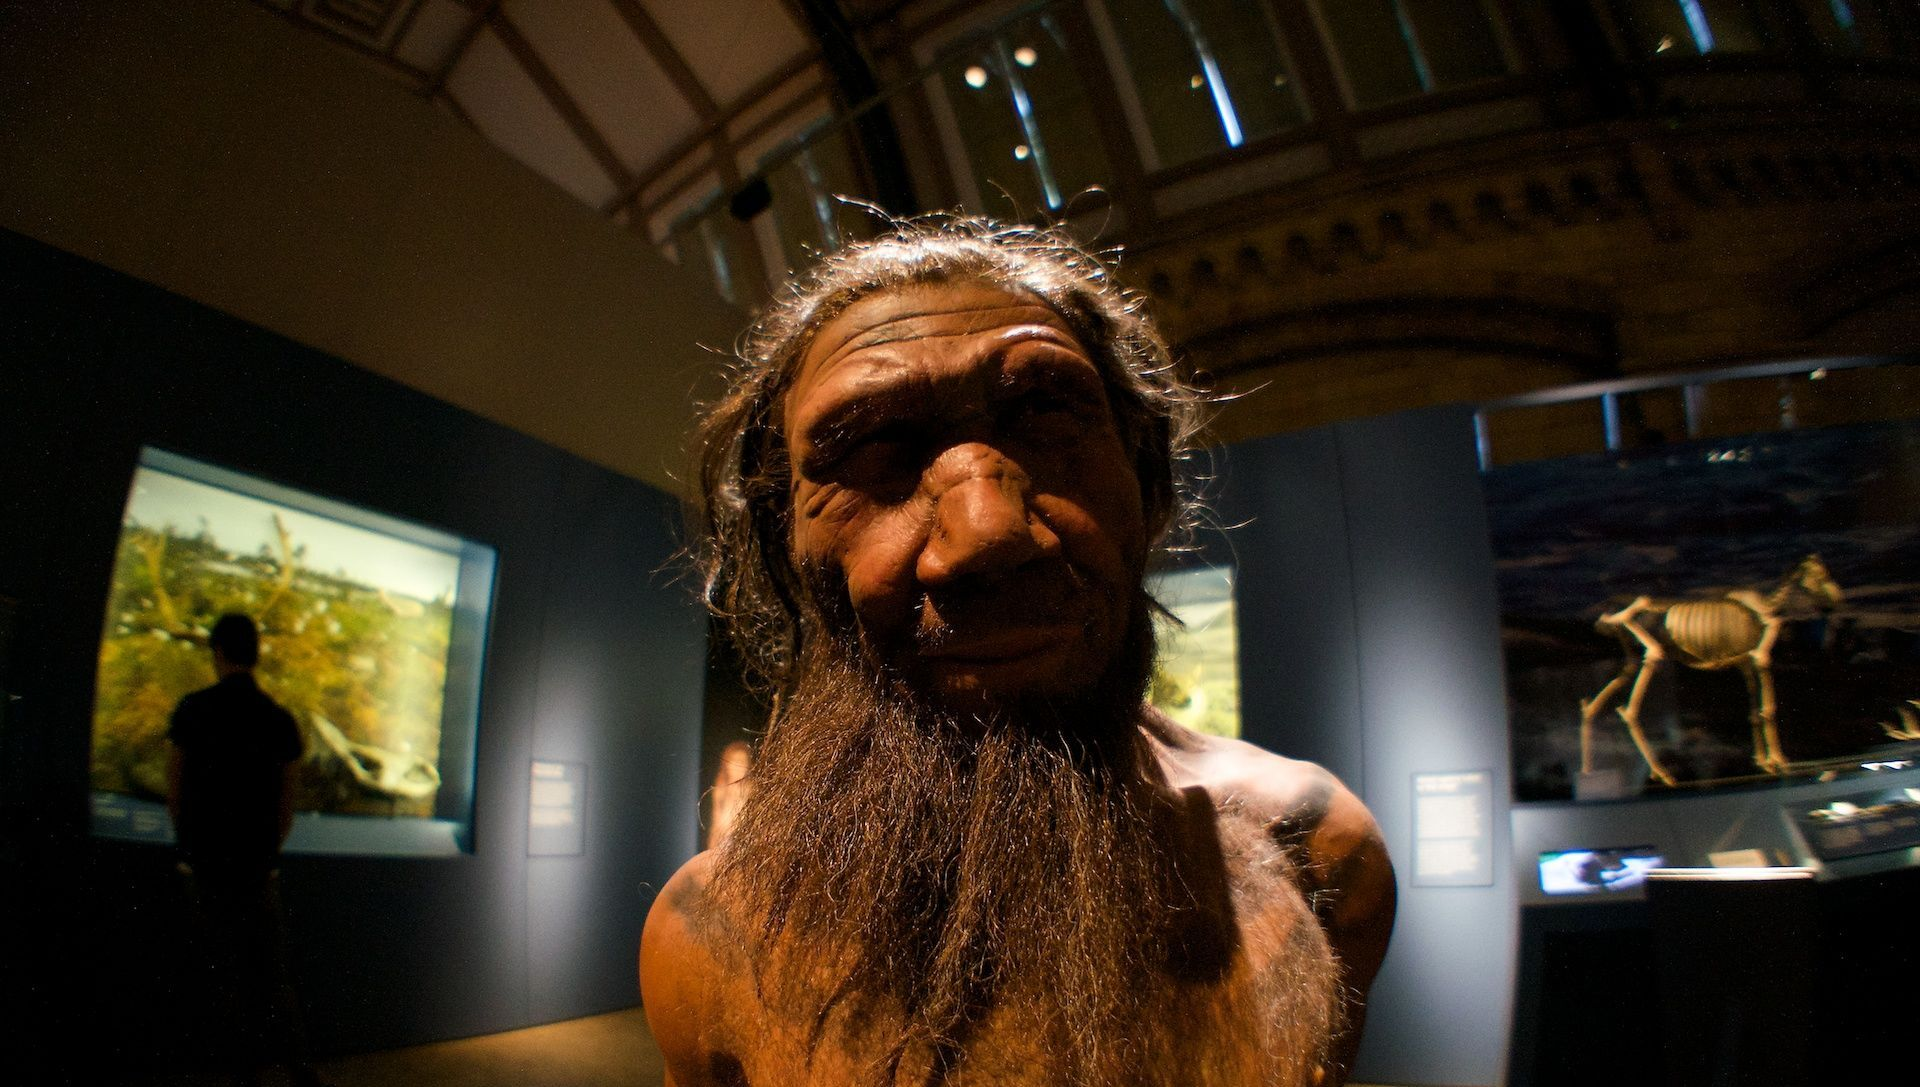 Neanderthal. Britain: One Million Years of the Human Story at the Natural History Museum - Sputnik International, 1920, 30.07.2021